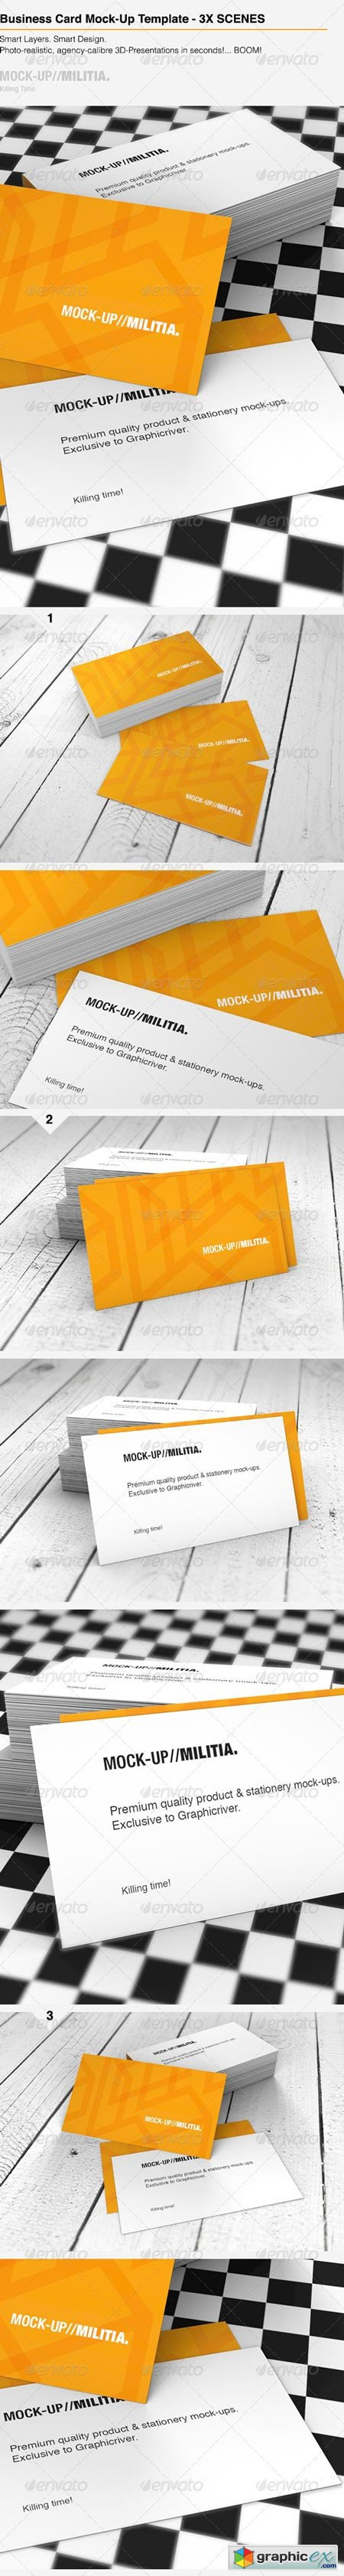 Business Card Mock-Up Template With Various Scenes 6330528